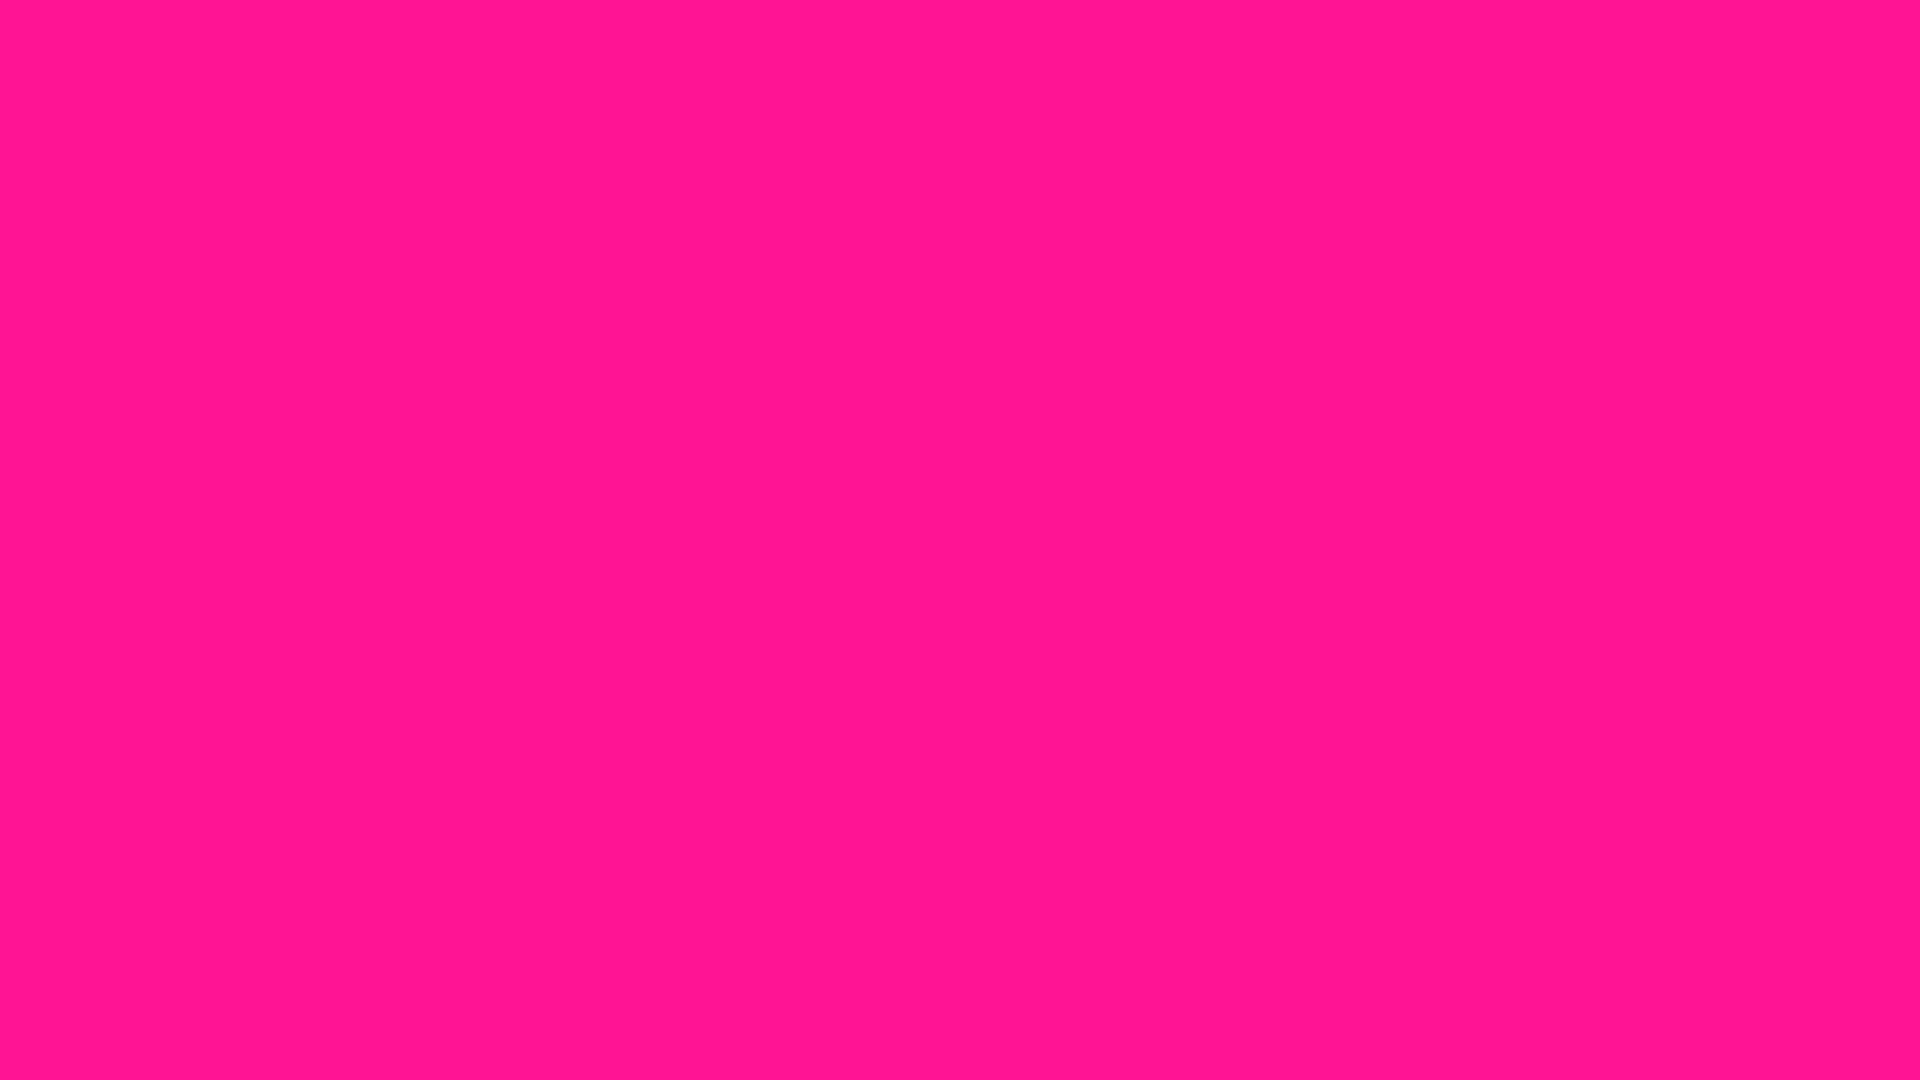 1920x1080 Fluorescent Pink Solid Color Background